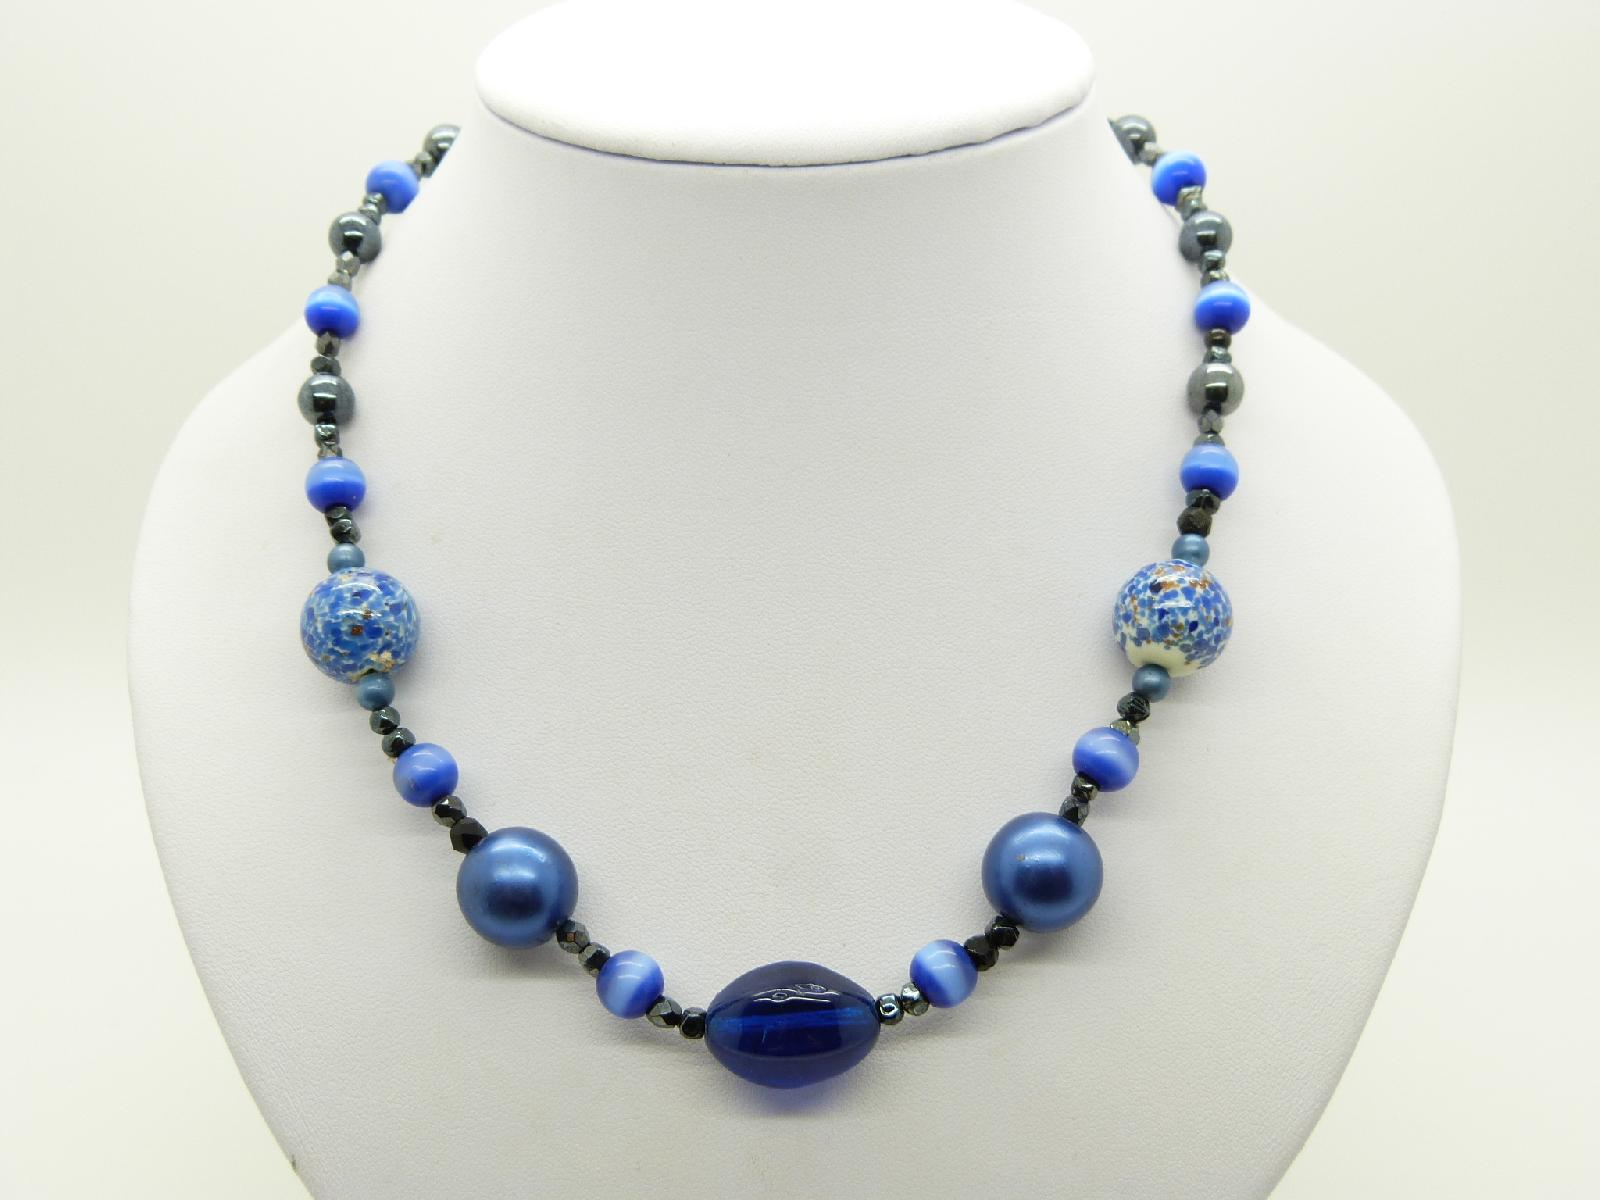 £8.00 - Vintage Redesigned 70s Blue Glass and Hematite Bead Necklace Fab!